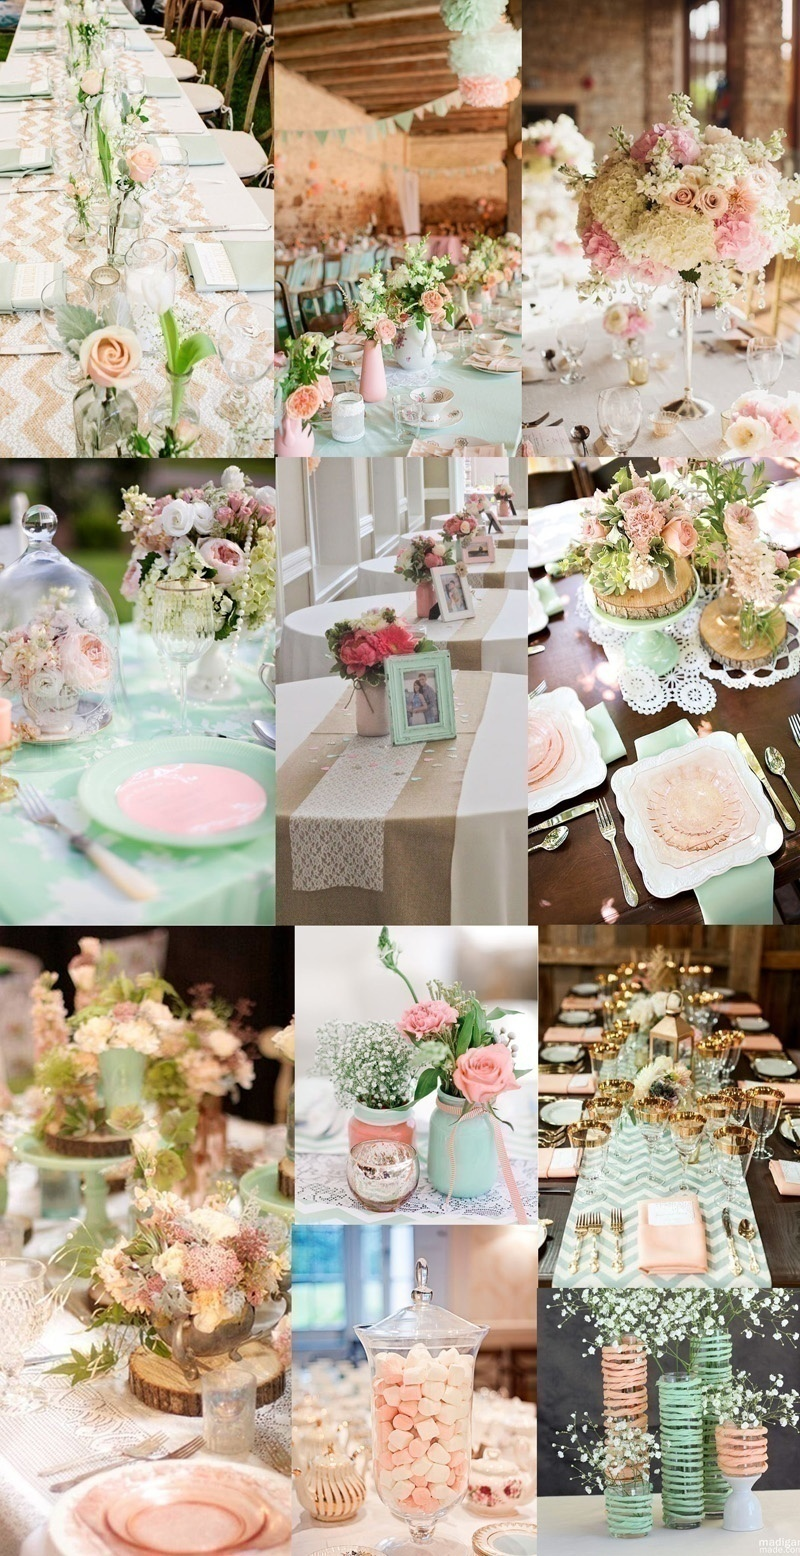 Summerweddingseries Spectacular Wedding Table Decorations And